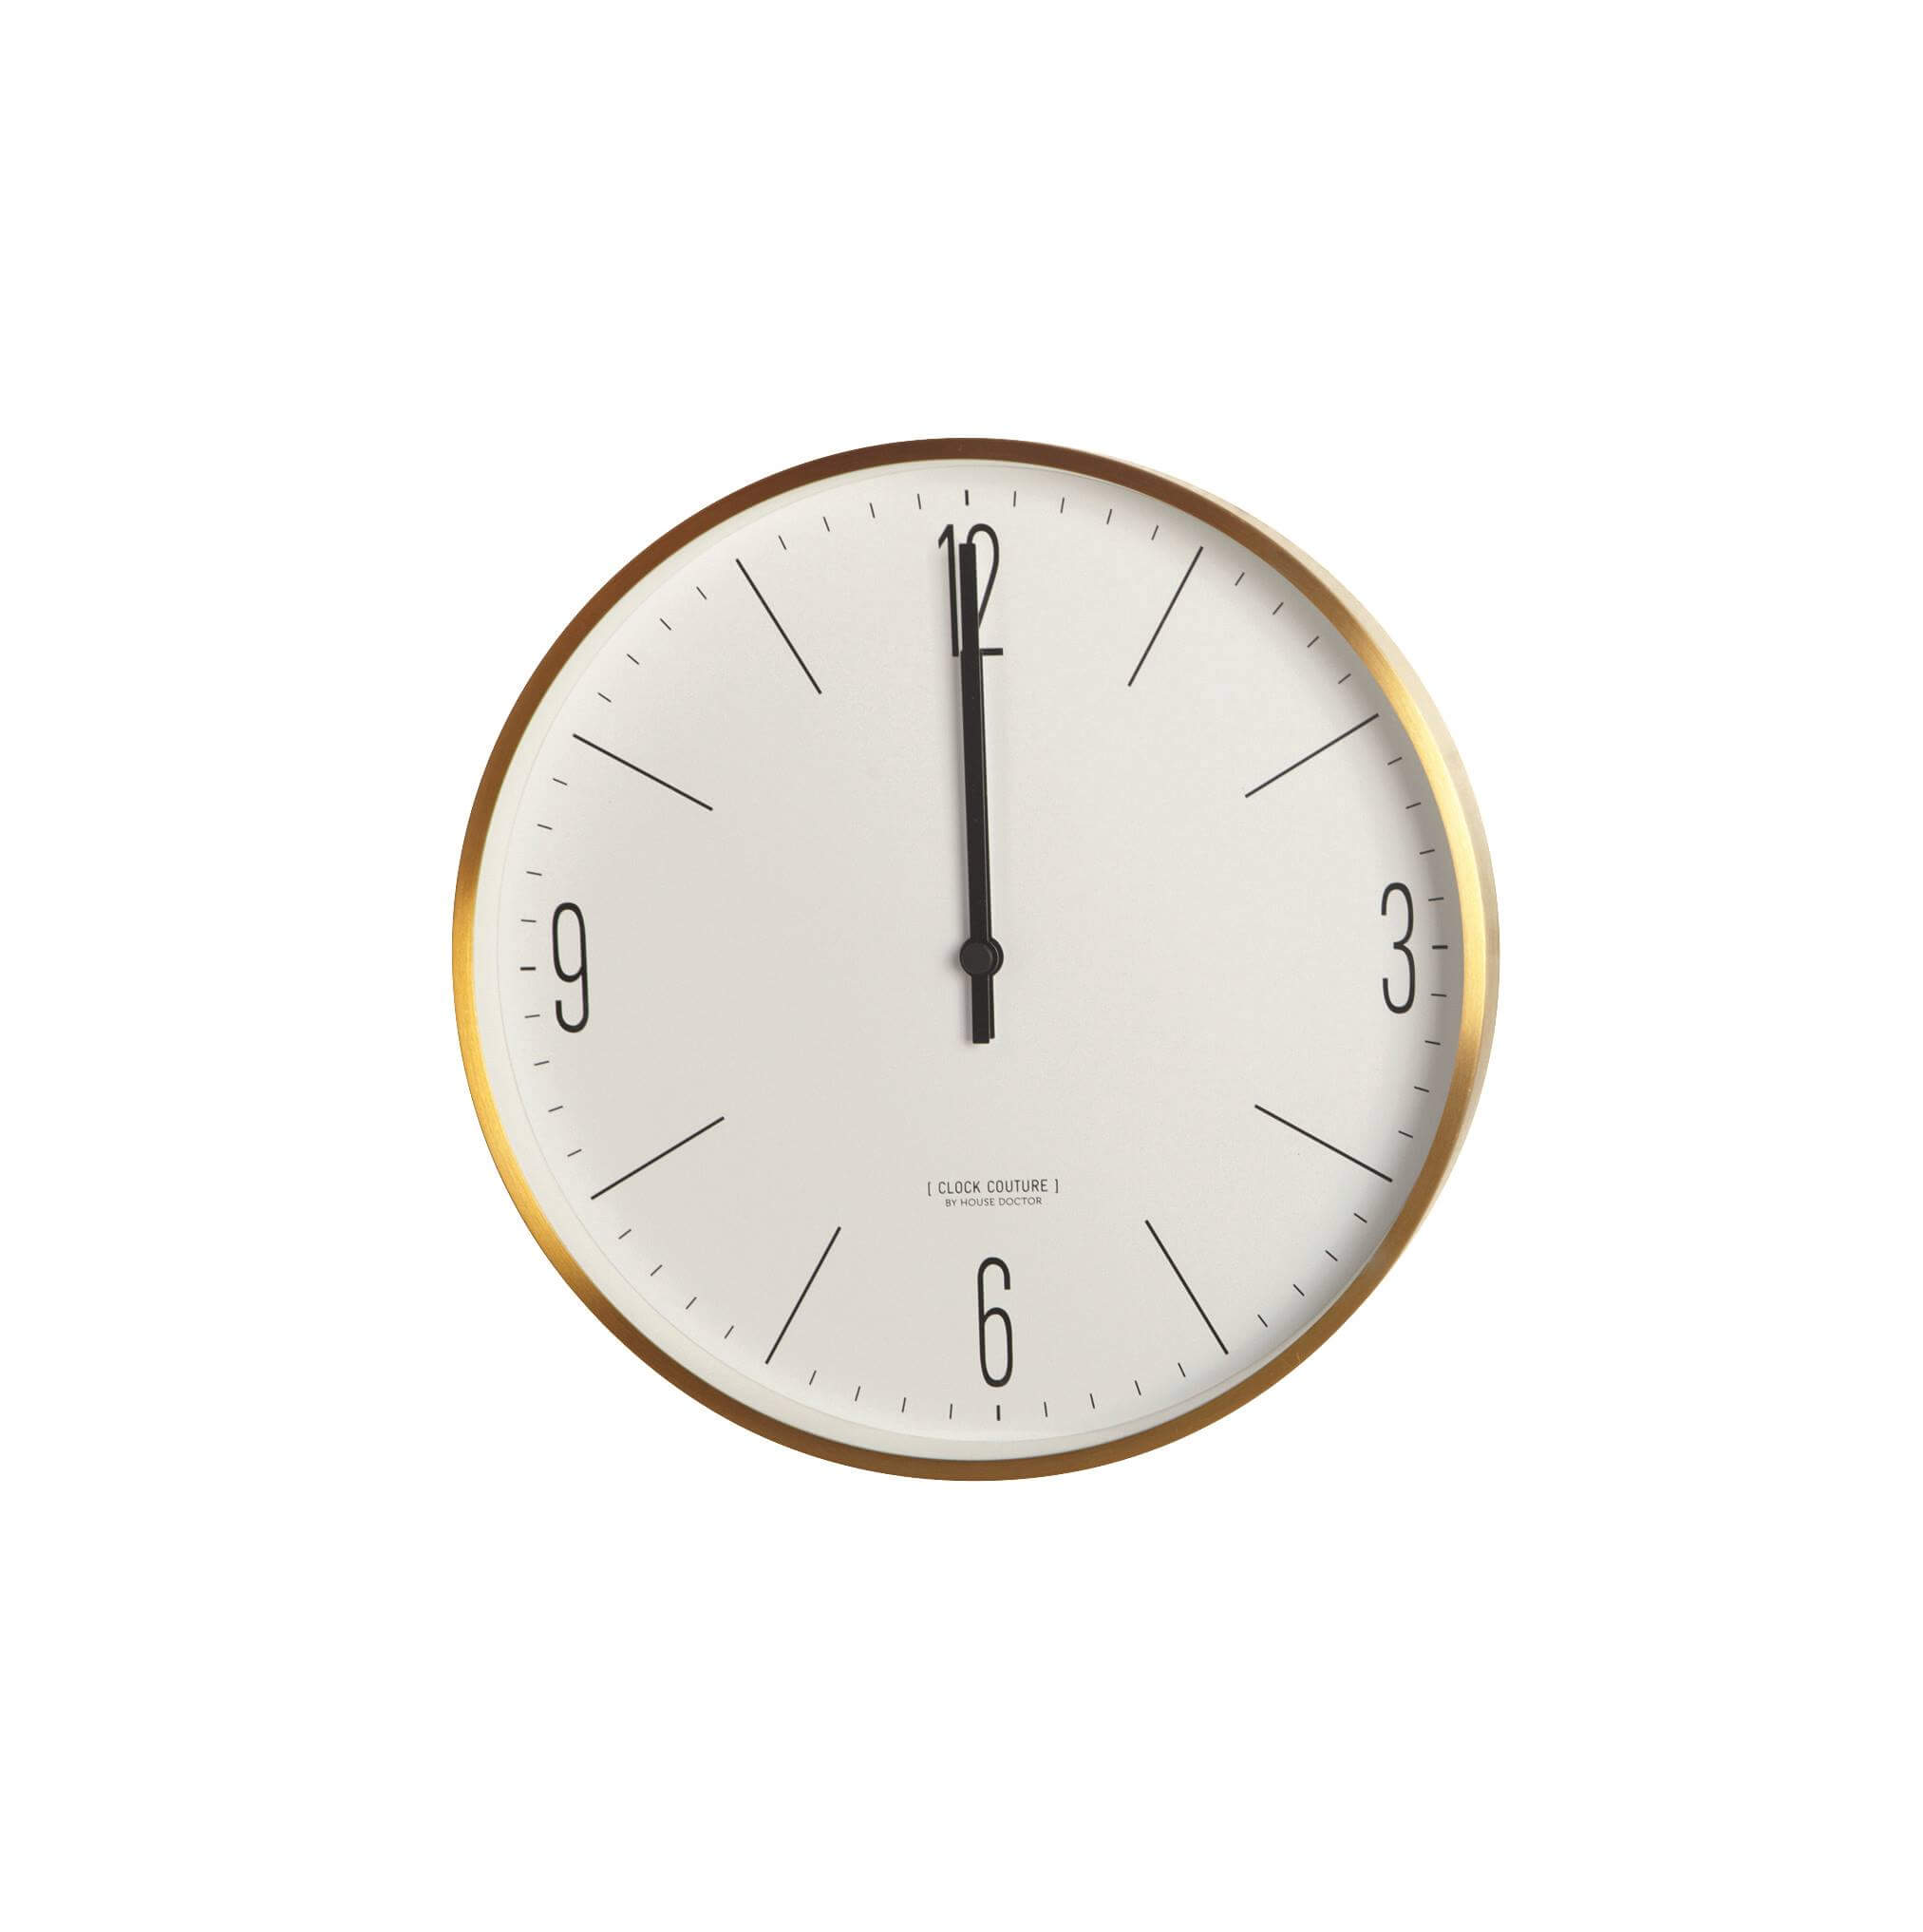 house doctor wall clocks gold white color. Black Bedroom Furniture Sets. Home Design Ideas